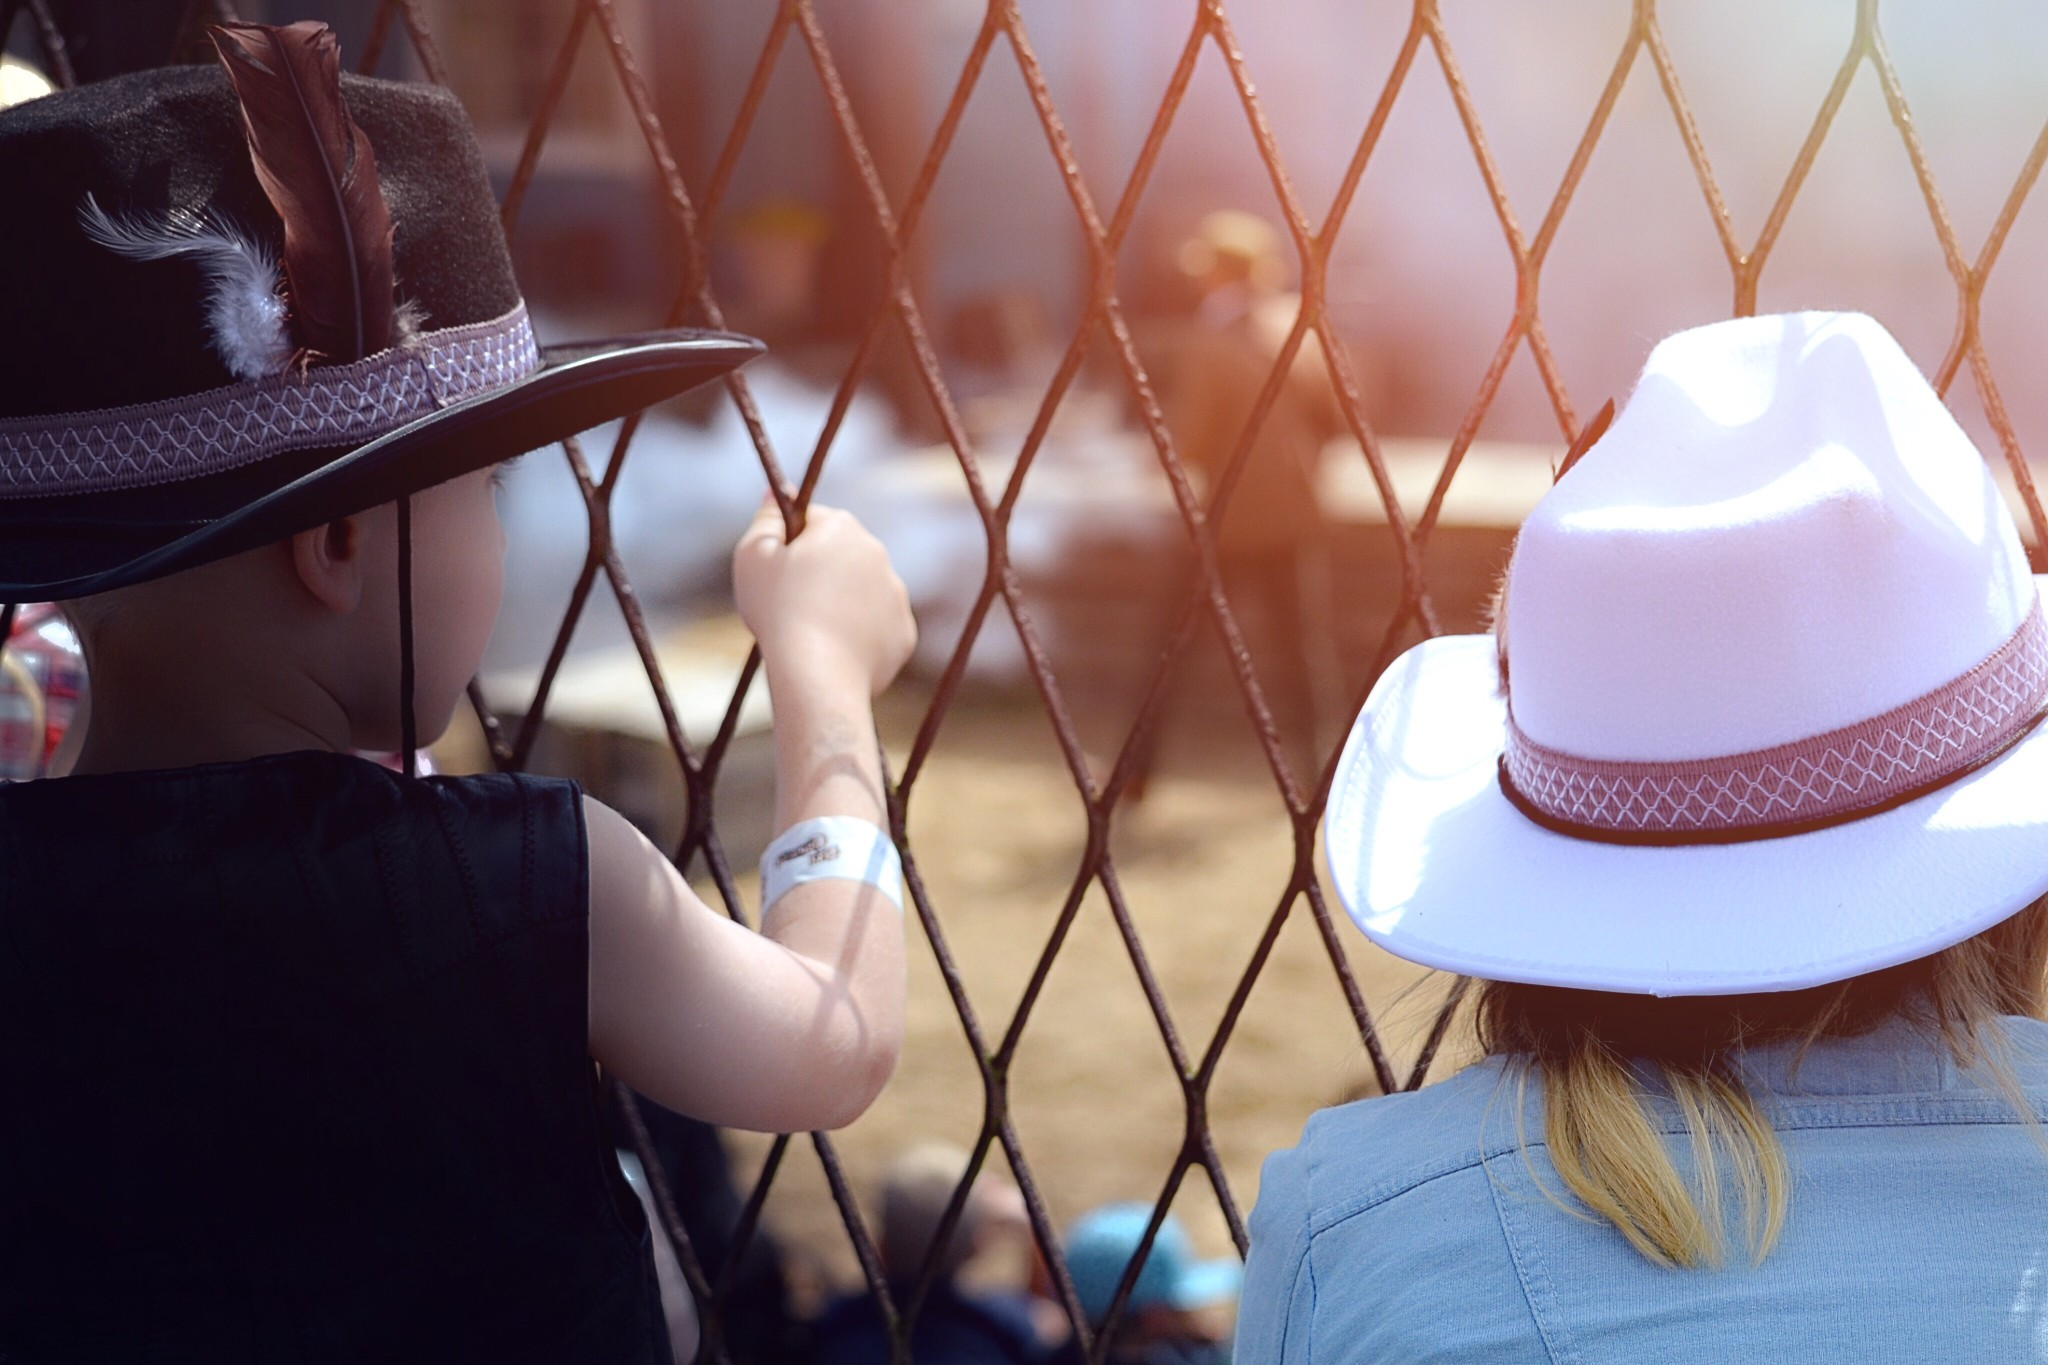 Sartorial style aside, white trumps black hat SEO when it comes to content marketing.